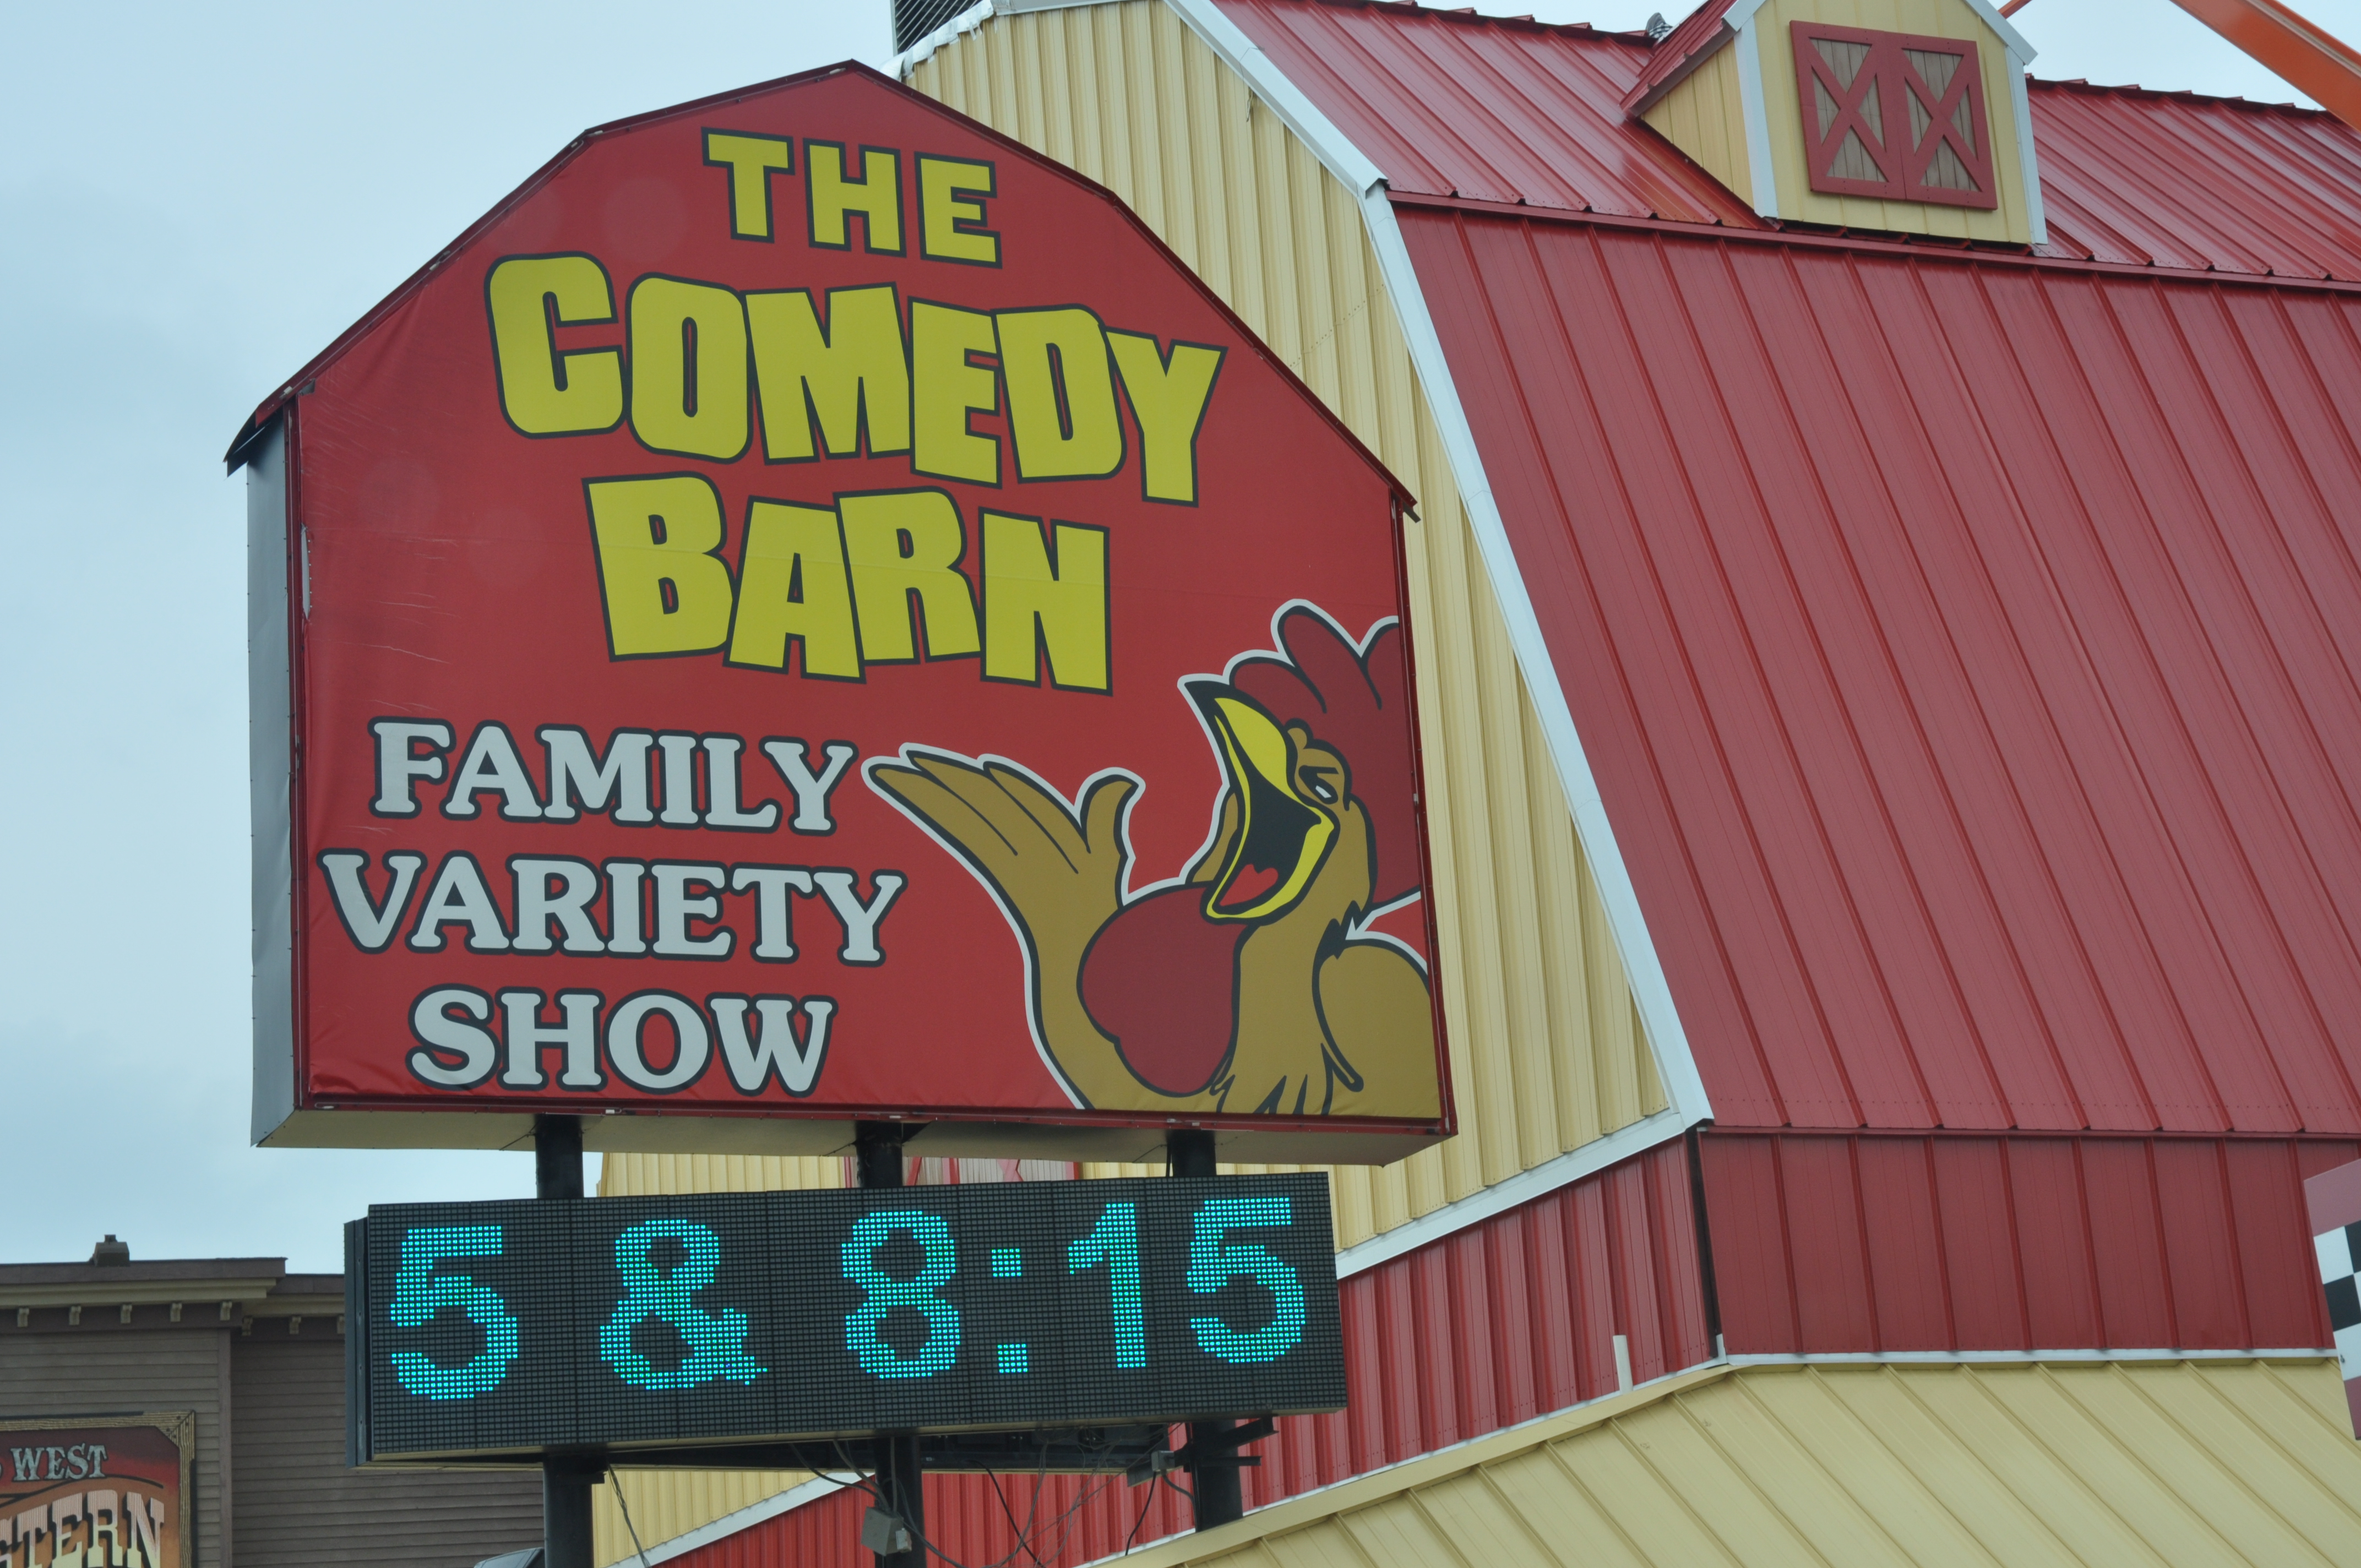 Sign at The Comedy Barn in Pigeon Forge Tennessee